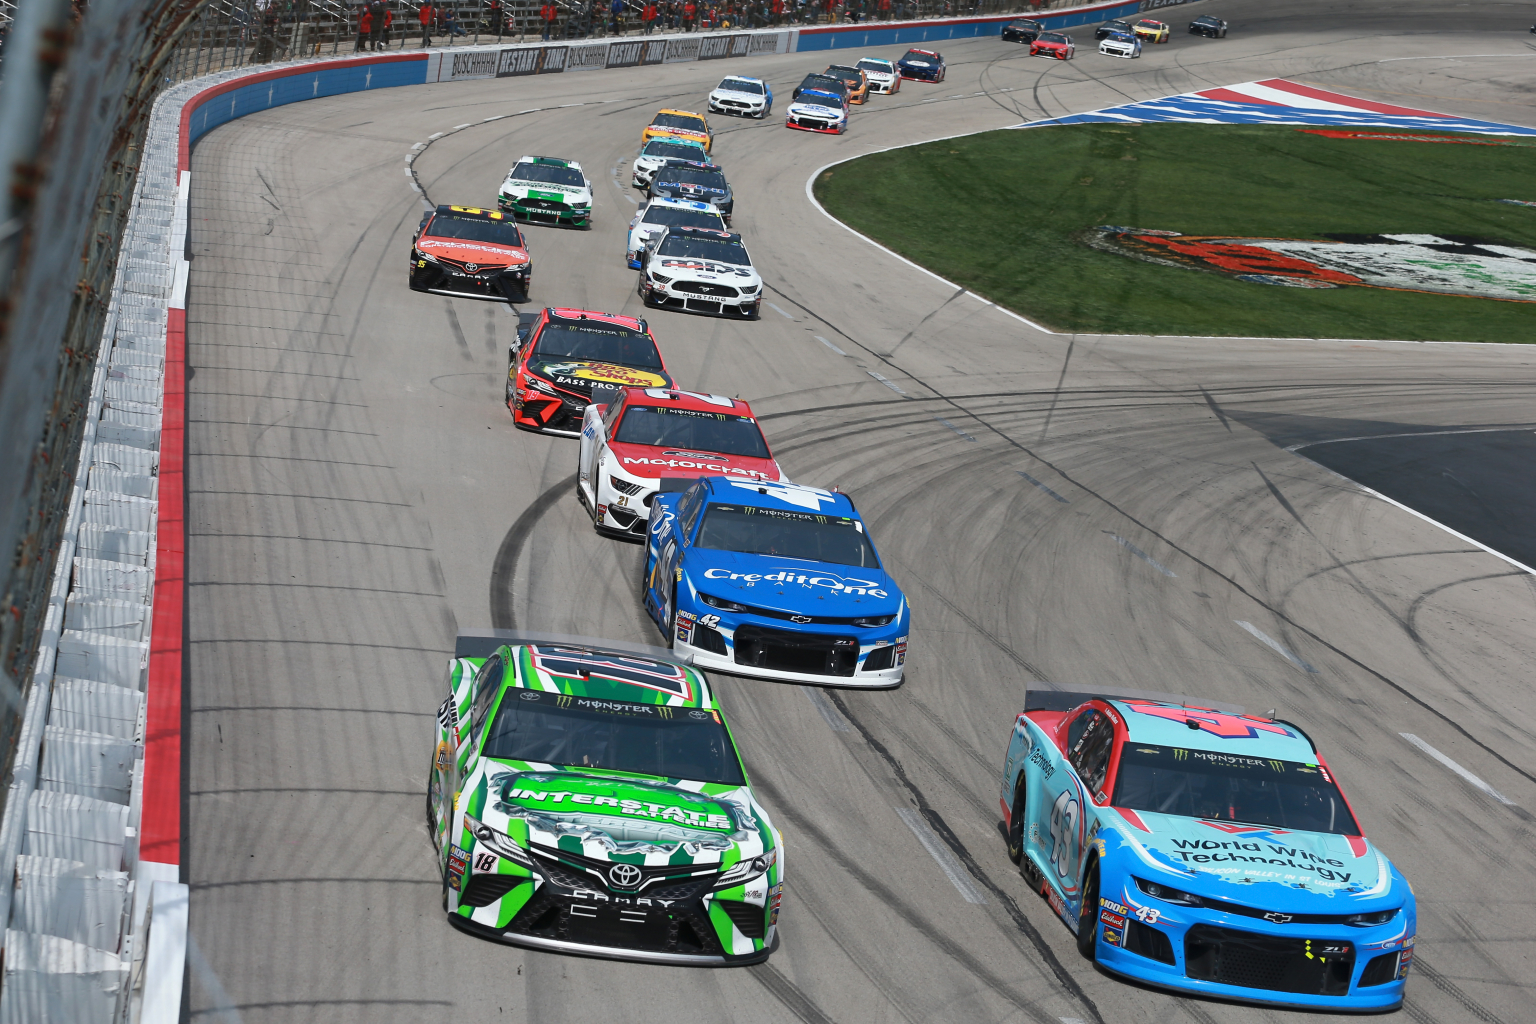 NASCAR green flag passes are up significantly in 2019 (Data)